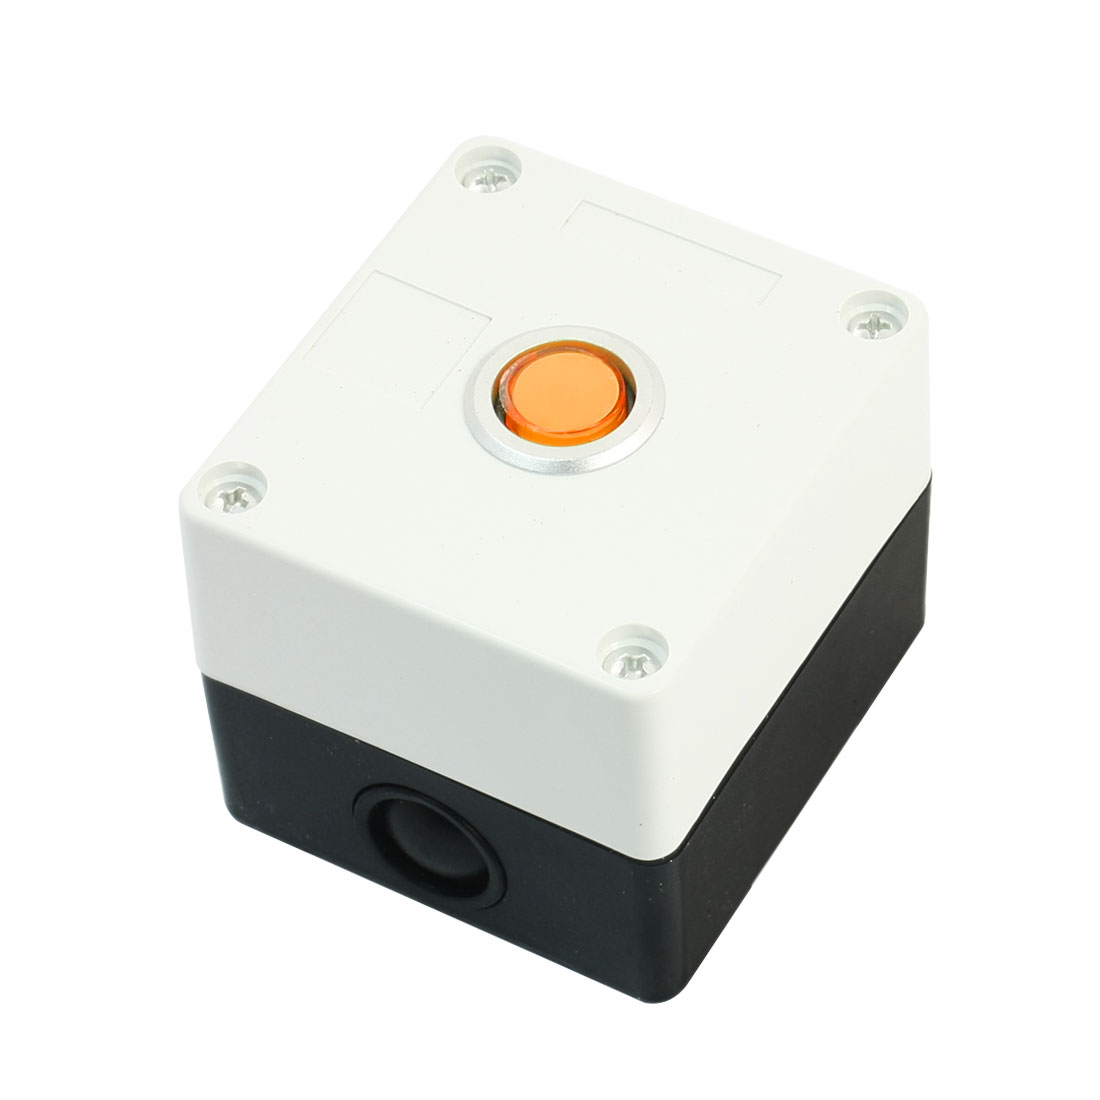 AC 220V 5A Orange Pilot Lamp SPDT 1NO 1NC 5Pin Momentary Action Rectangle Plastic Push Button Station Switch Control Box